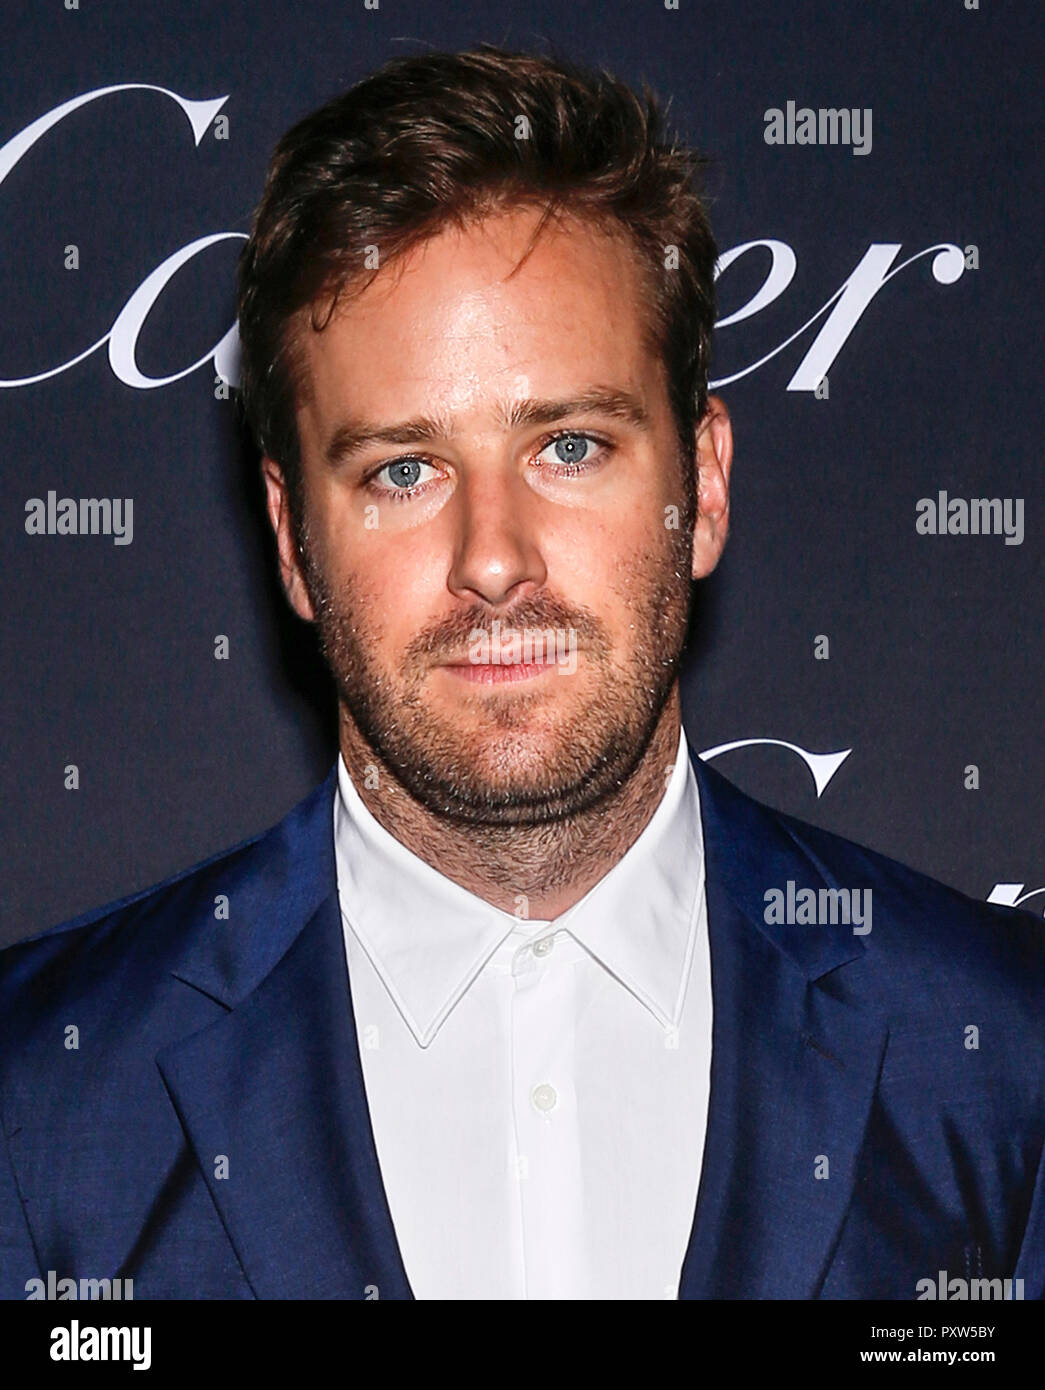 Armie Hammer Stock Photos & Armie Hammer Stock Images - Alamy